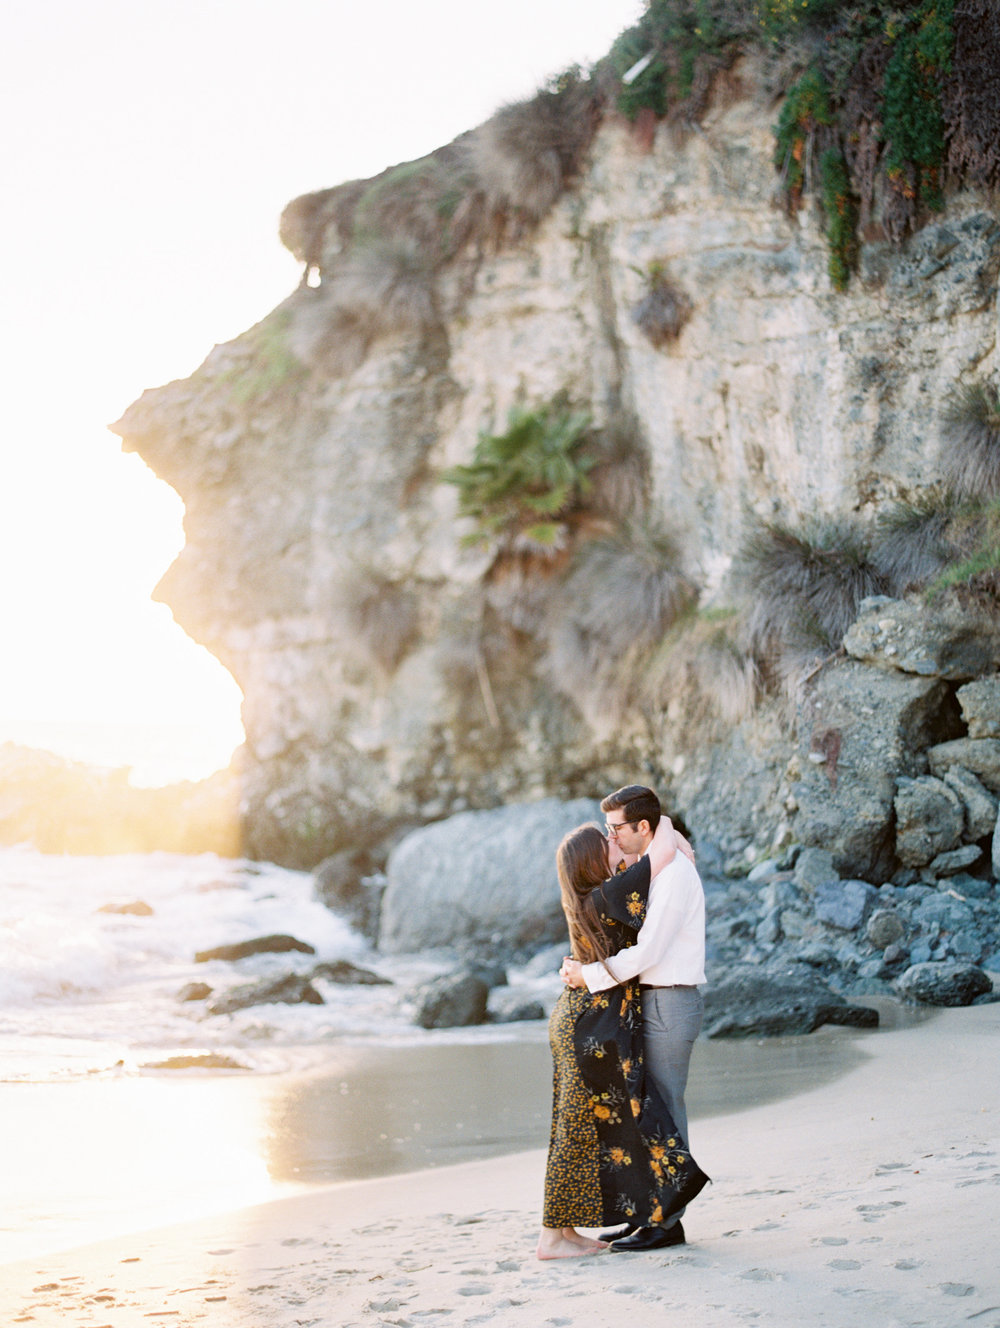 BEACH PROPOSAL  |  MALLORY DAWN PHOTO  |  THEATER 10 WEDDING FILMS  |  ENGAGEMENT PHOTOS AND VIDEO